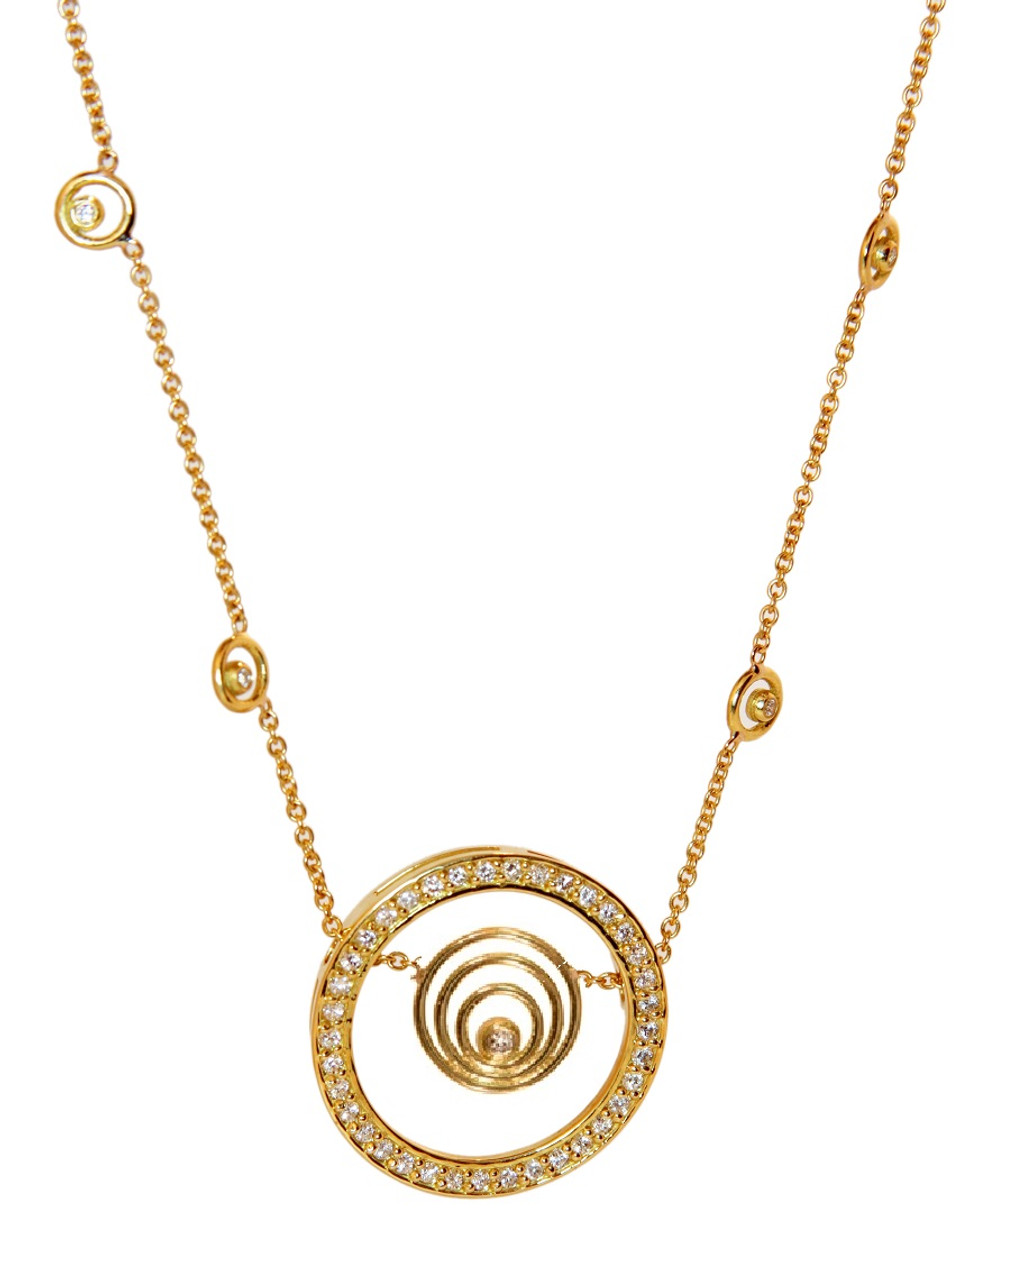 Karma hoop necklace- large- 14K gold with diamonds